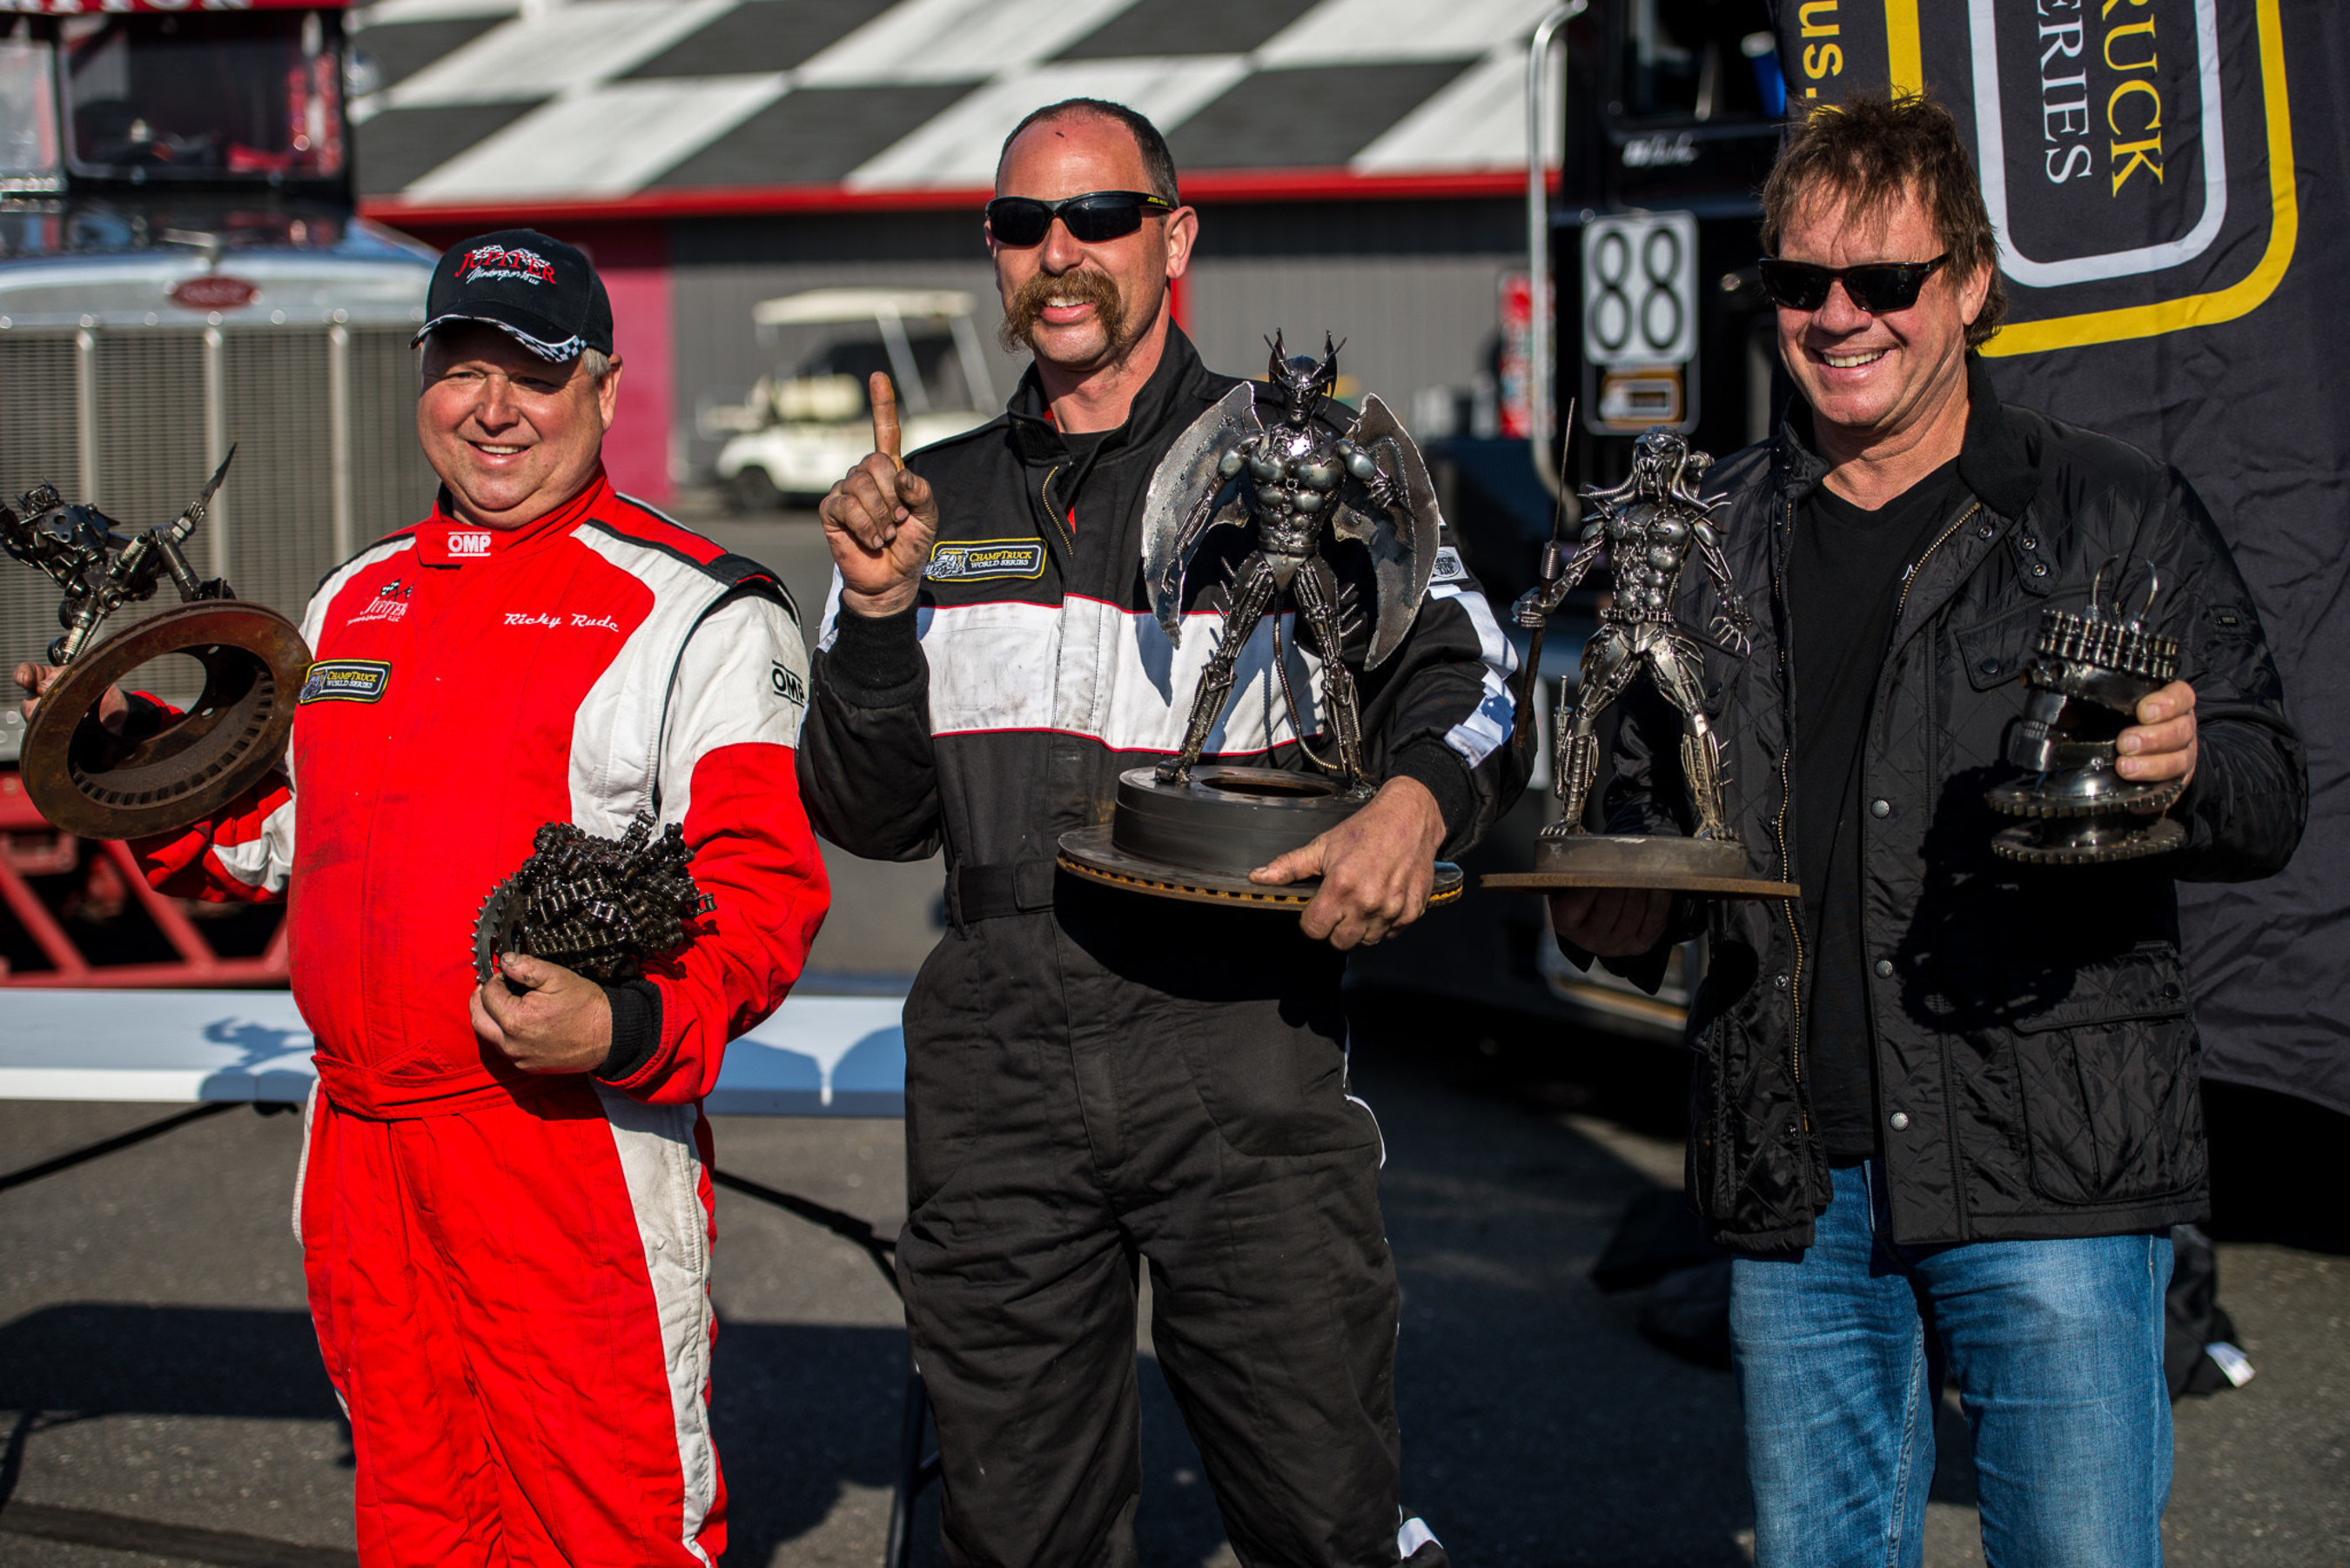 Mike Morgan (center) finished first in the inaugural Meritor ChampTruck World Series(R) at New Jersey Motorsports Park in Millville, New Jersey April 26. Ricky Proffitt Rude (left) came in second and Mike Ryan was third-place finisher.